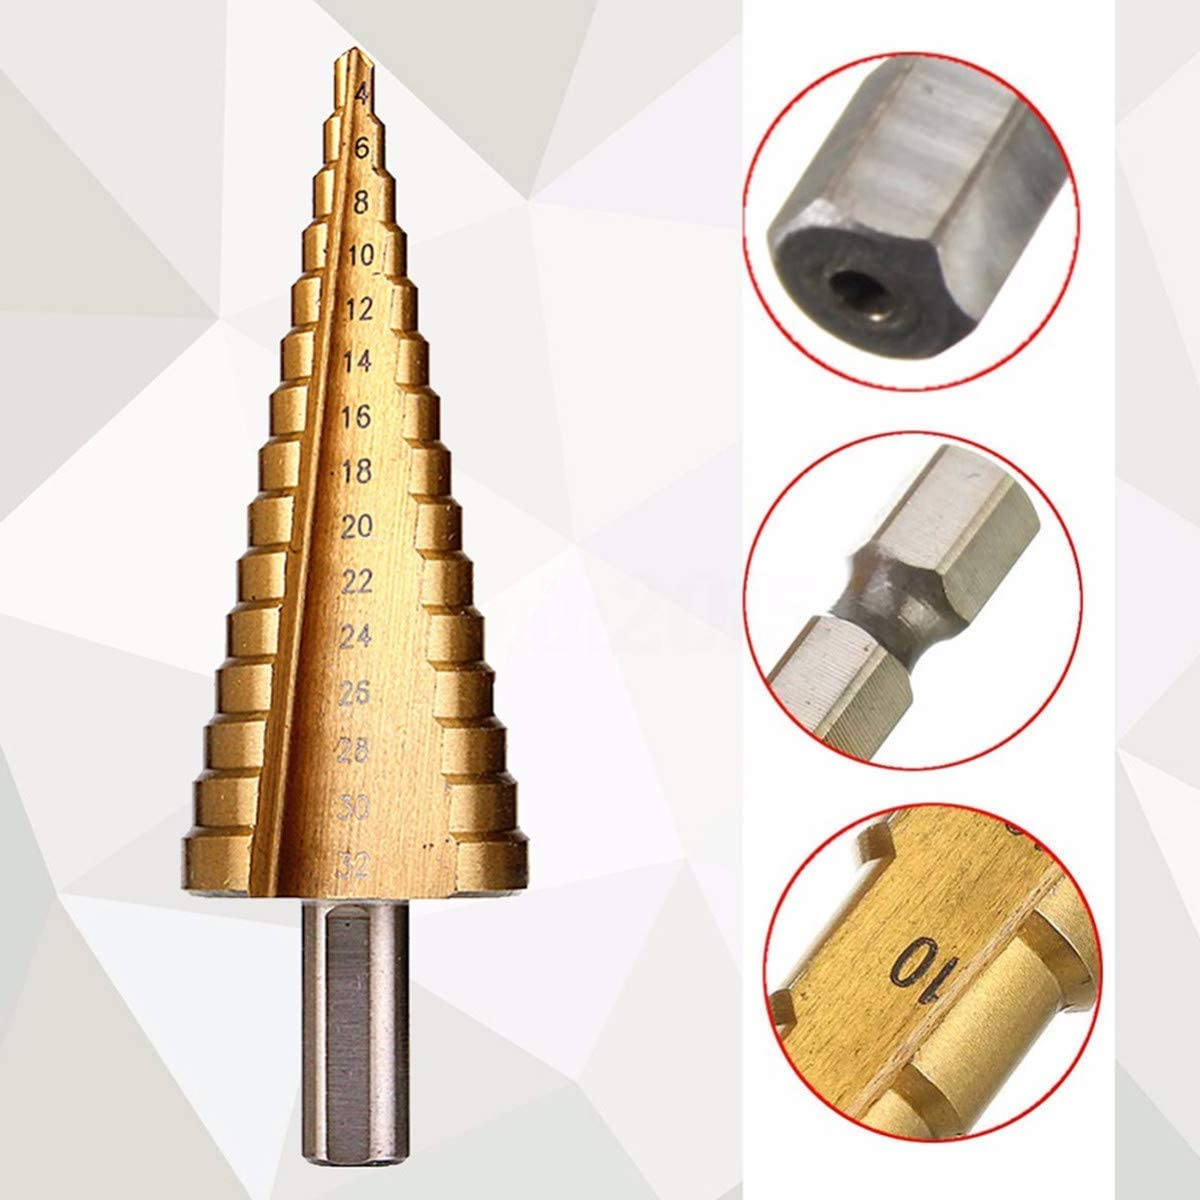 Double Cutting Blades TOOCOOL Titanium Step Drill Bit set 5pcs Plastics Plexiglass 5 Standard Step Drill Bits Including an Automatic Center Punch Pipes High-Speed Steel Drill Bit for Metal /& Wood up to a Thickness of 5mm Total 50 Sides with Alumin